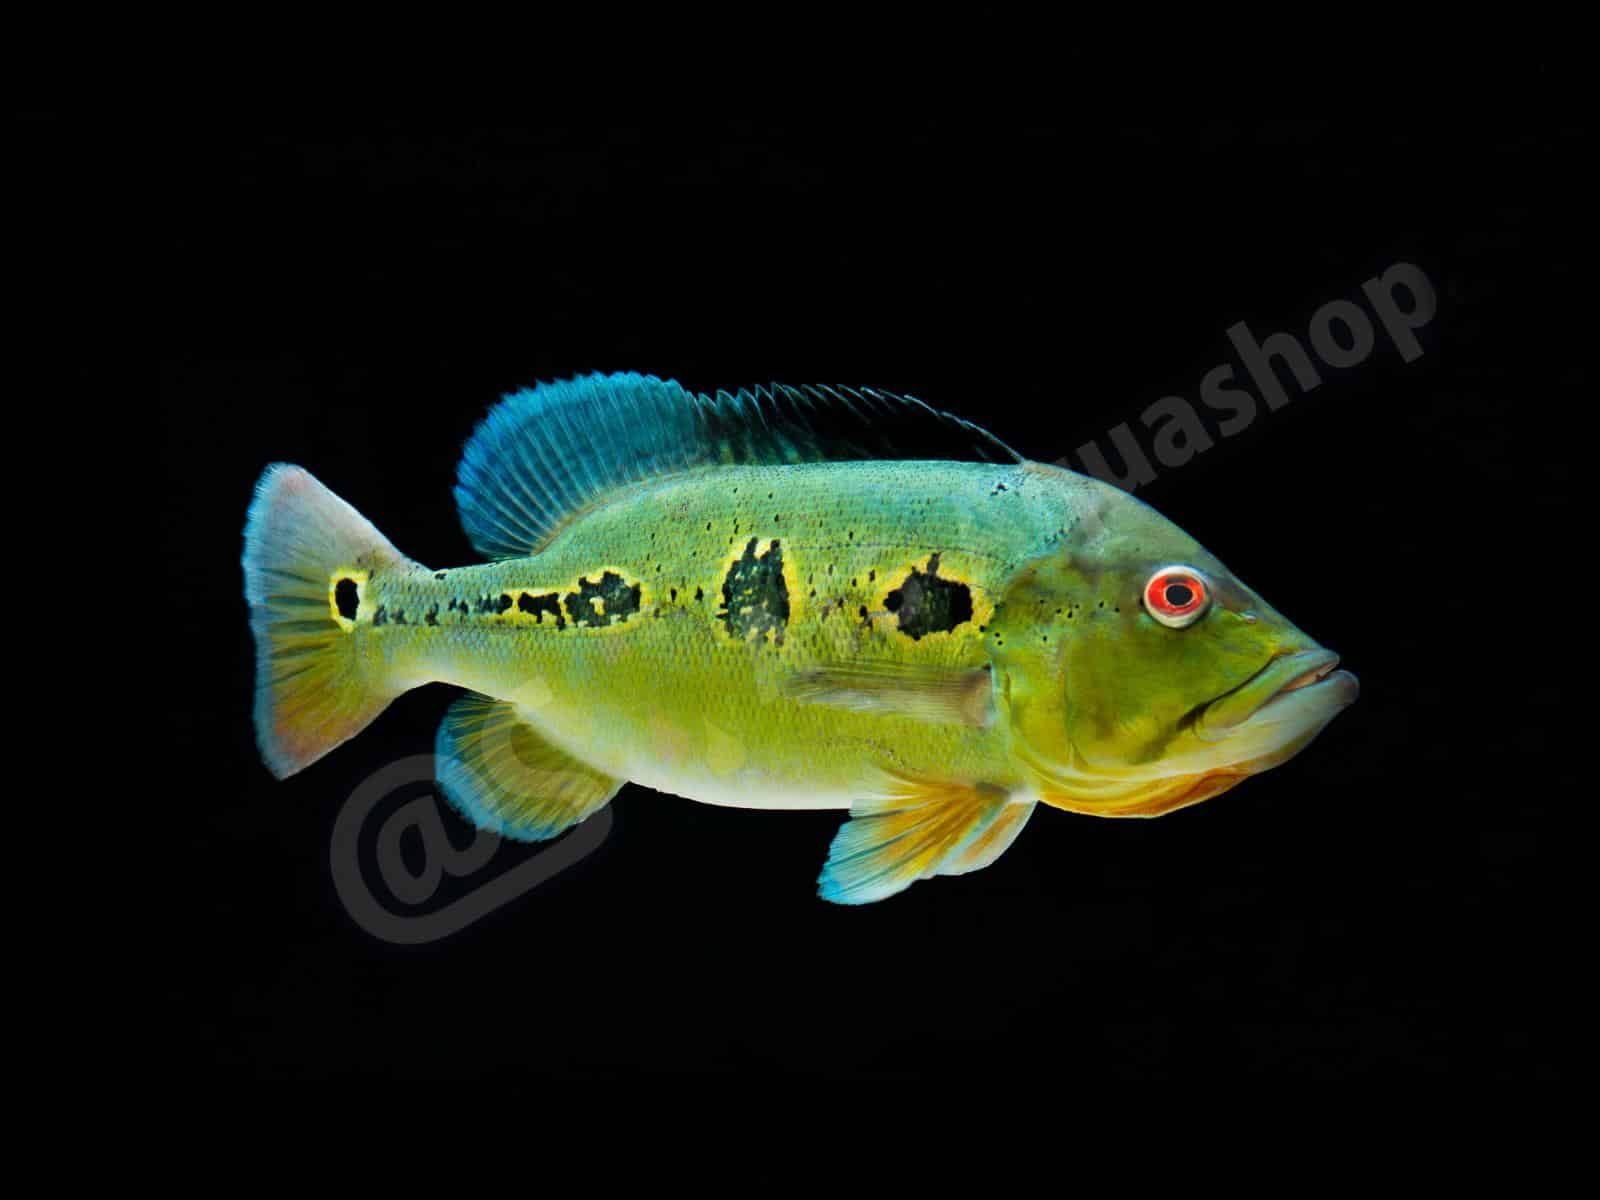 cichla orinocensis enrico richter 0182 8